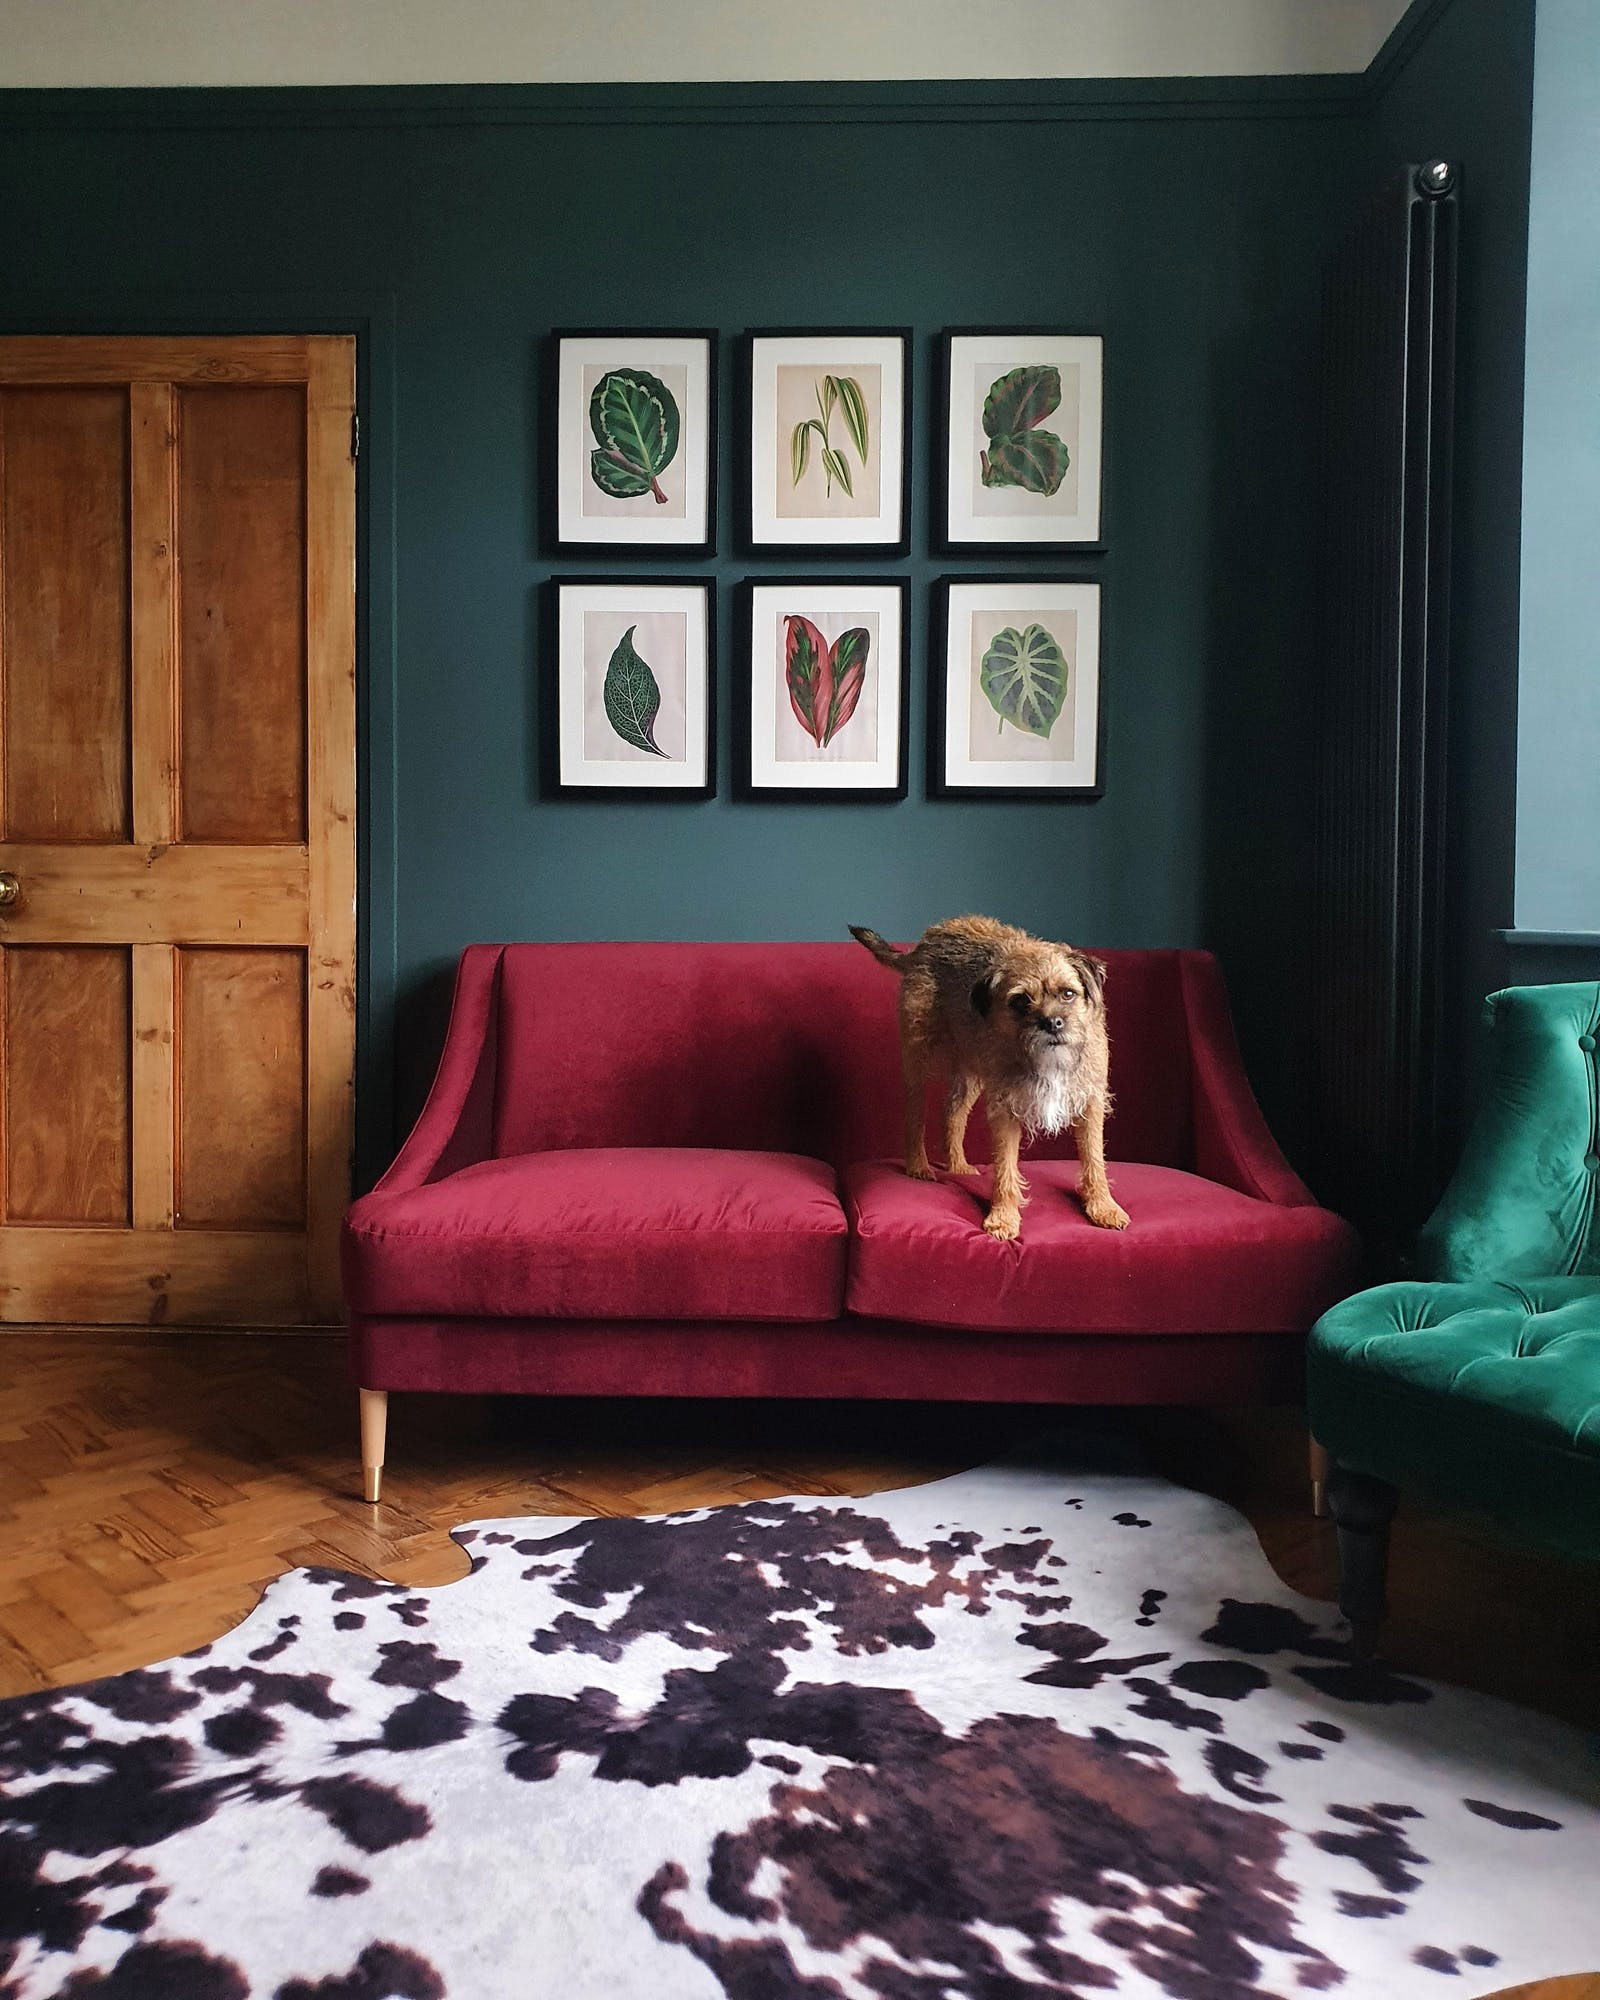 Living room with Lick Teal 03 walls and a dog perching on sofa